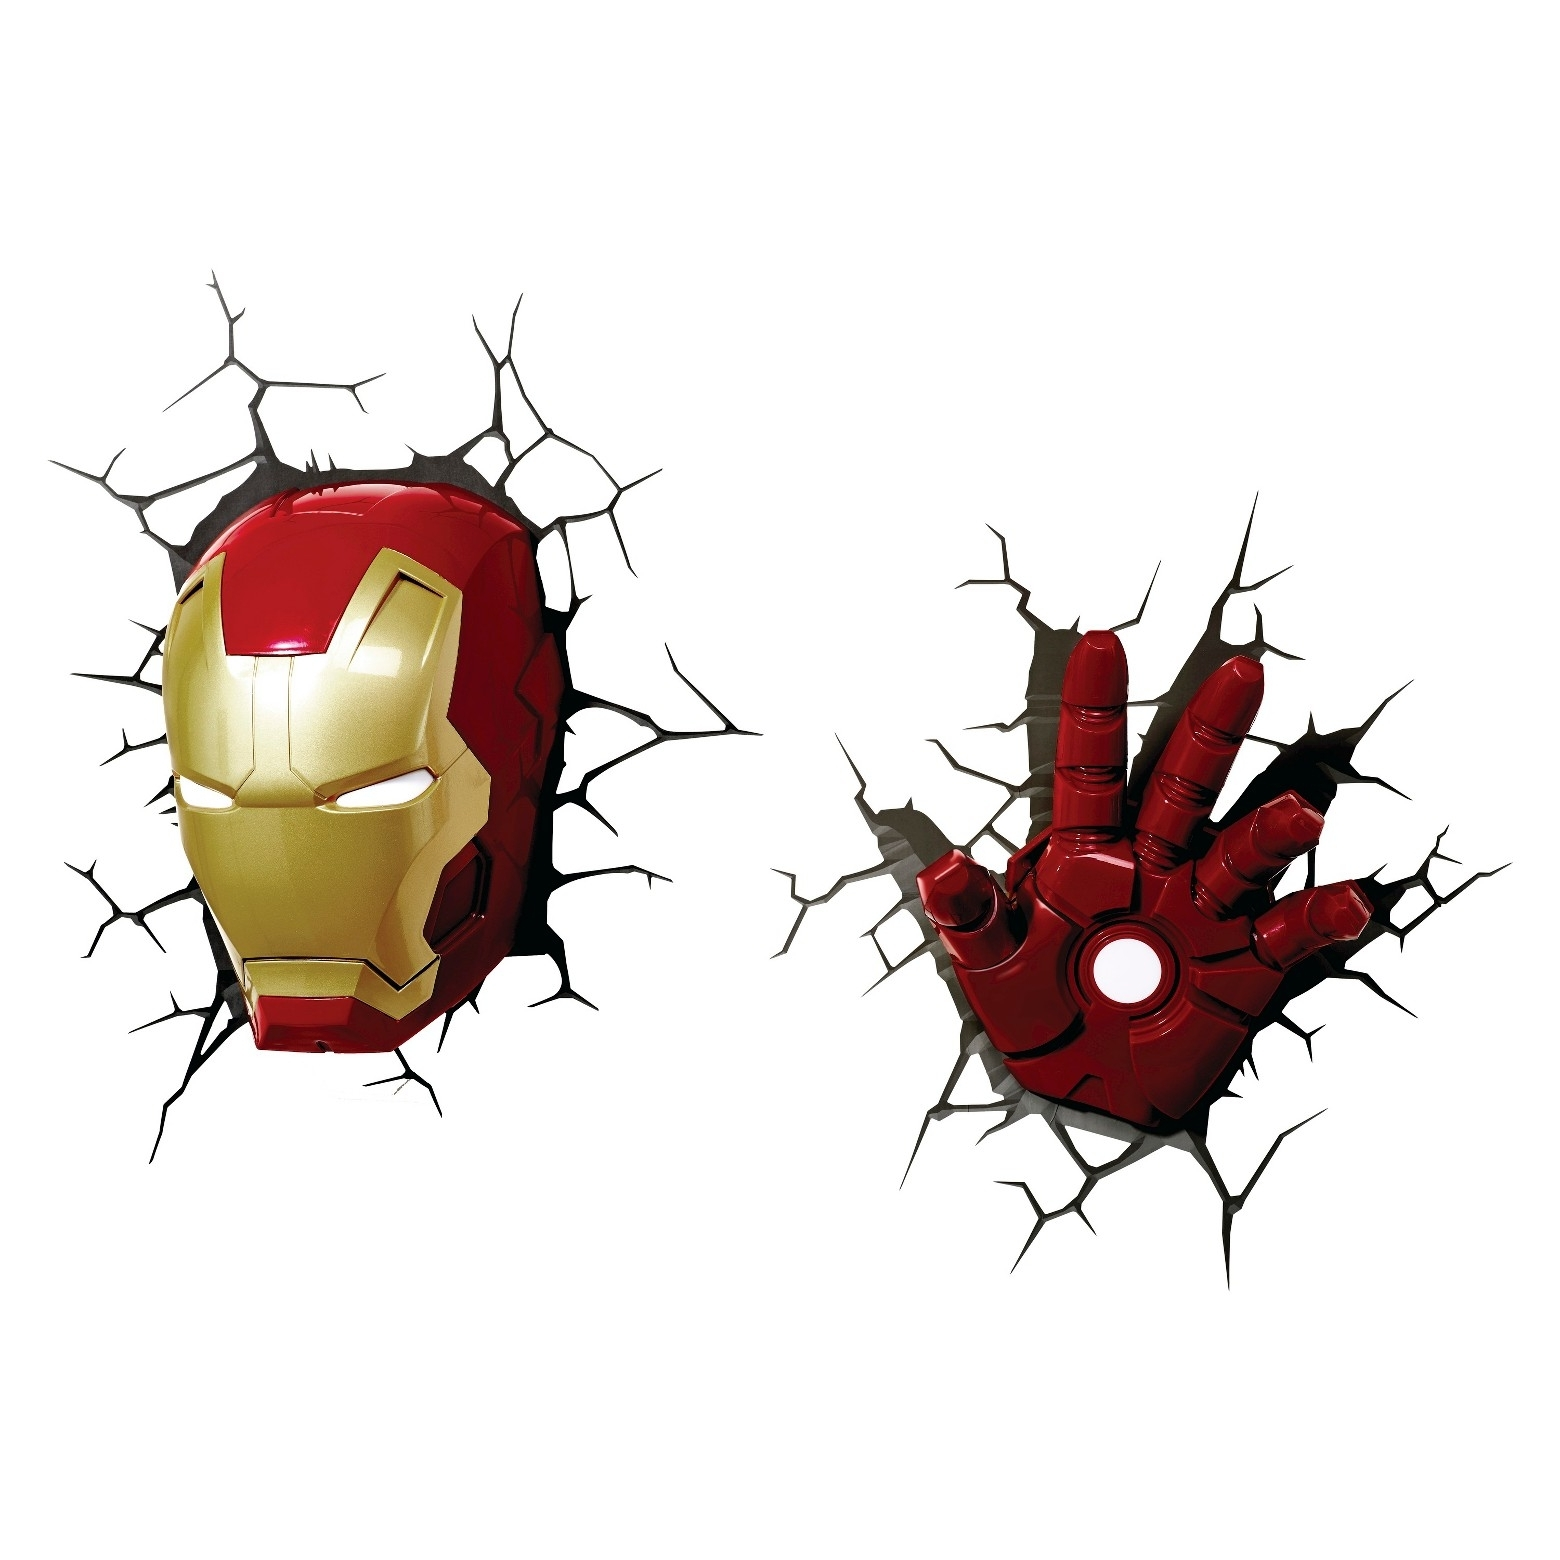 P><p>chase The Bad Guys Away With The Avengers 3d Wall Art Iron Regarding Trendy The Avengers 3d Wall Art Nightlight (View 5 of 15)